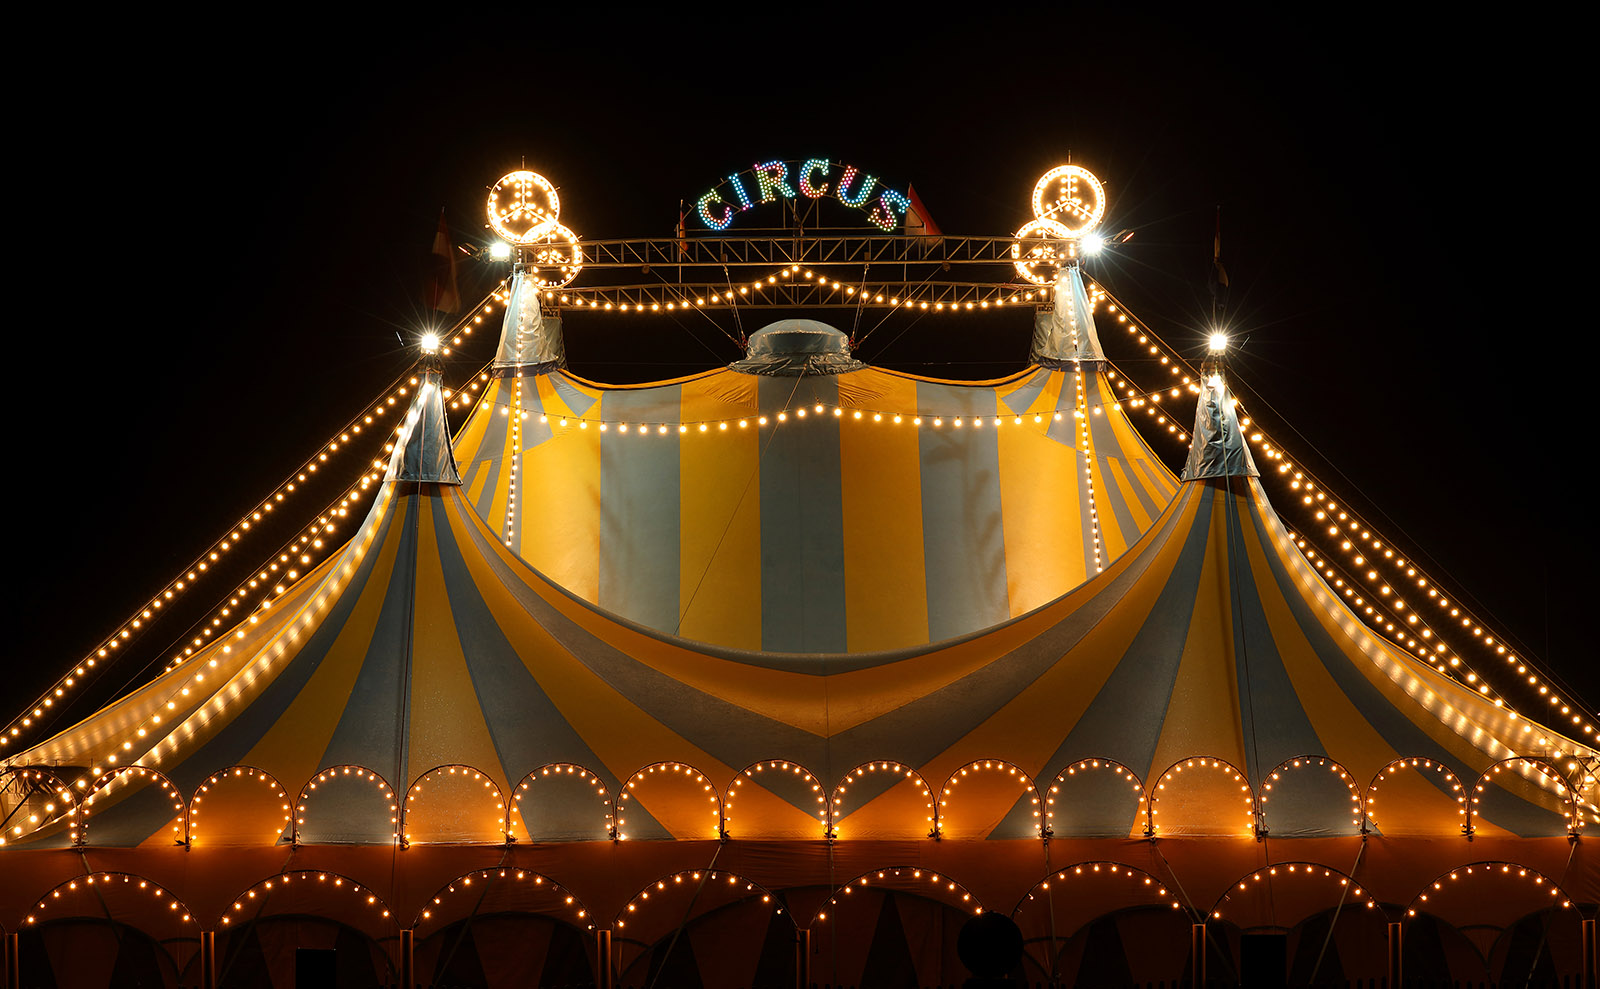 SSoP Podcast Episode 12 — The Circus: Found Family and Daring Feats